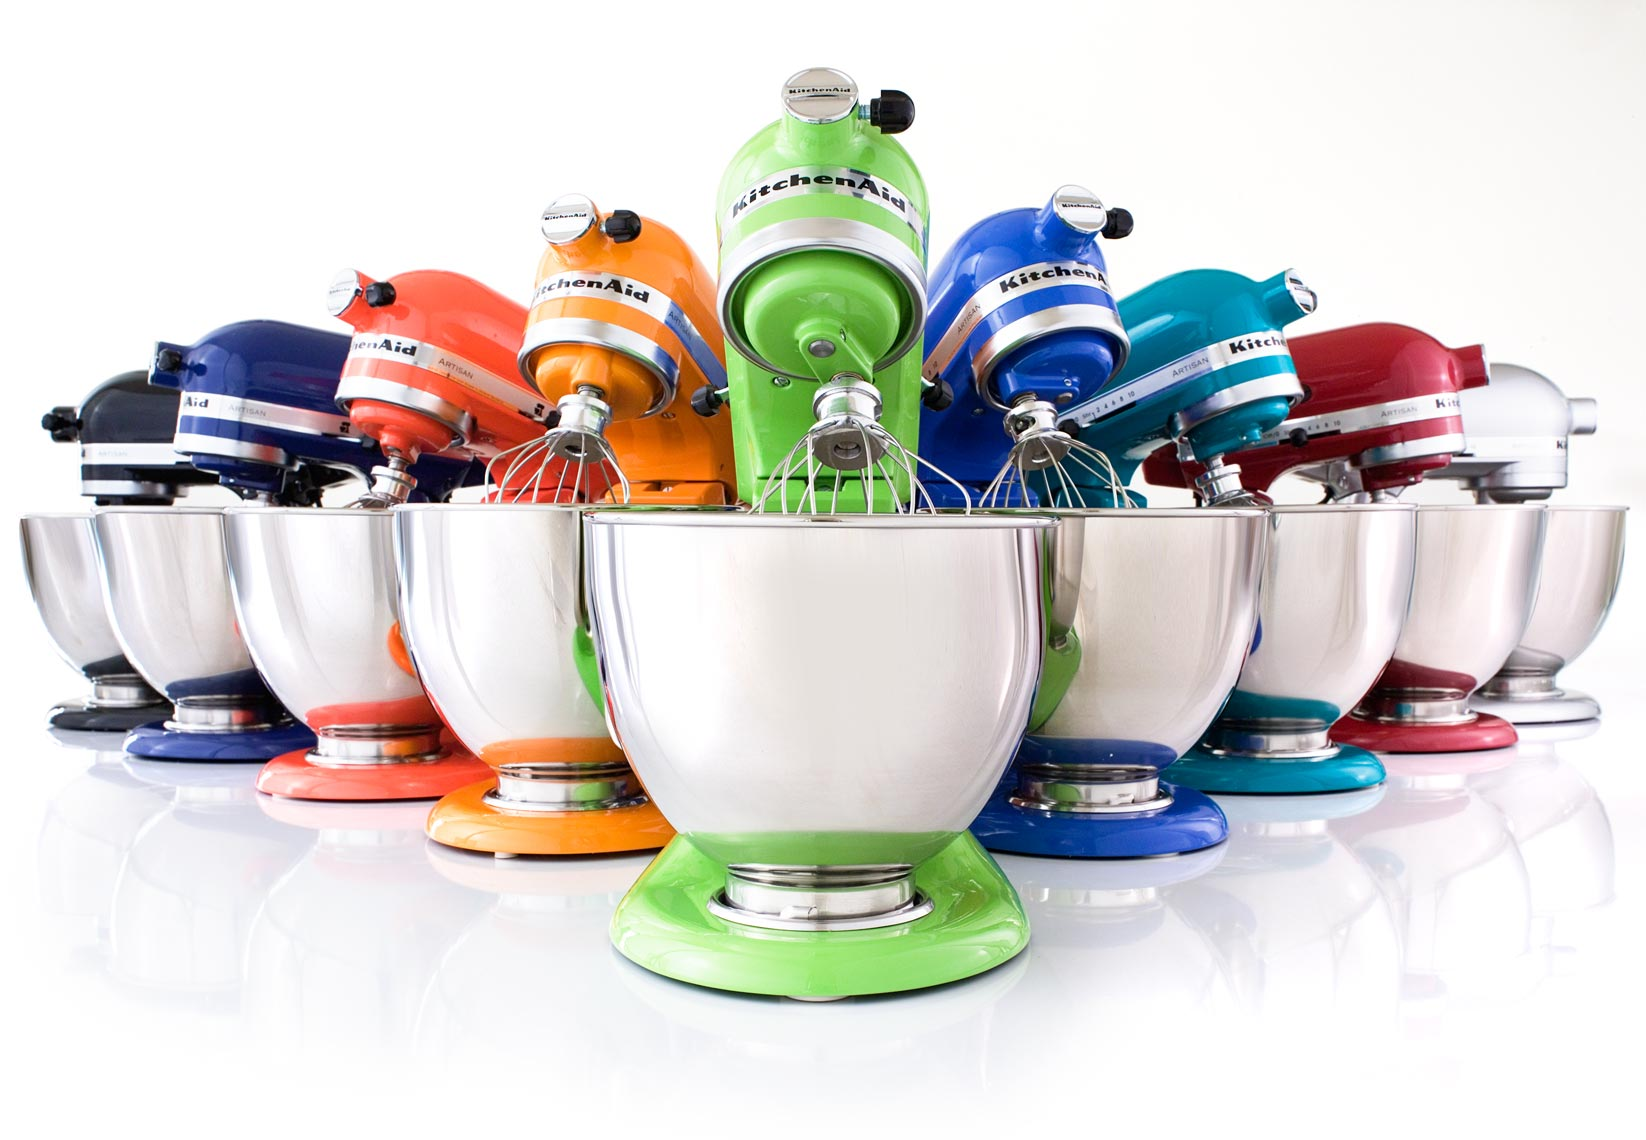 Lineup of kitchen aid blenders